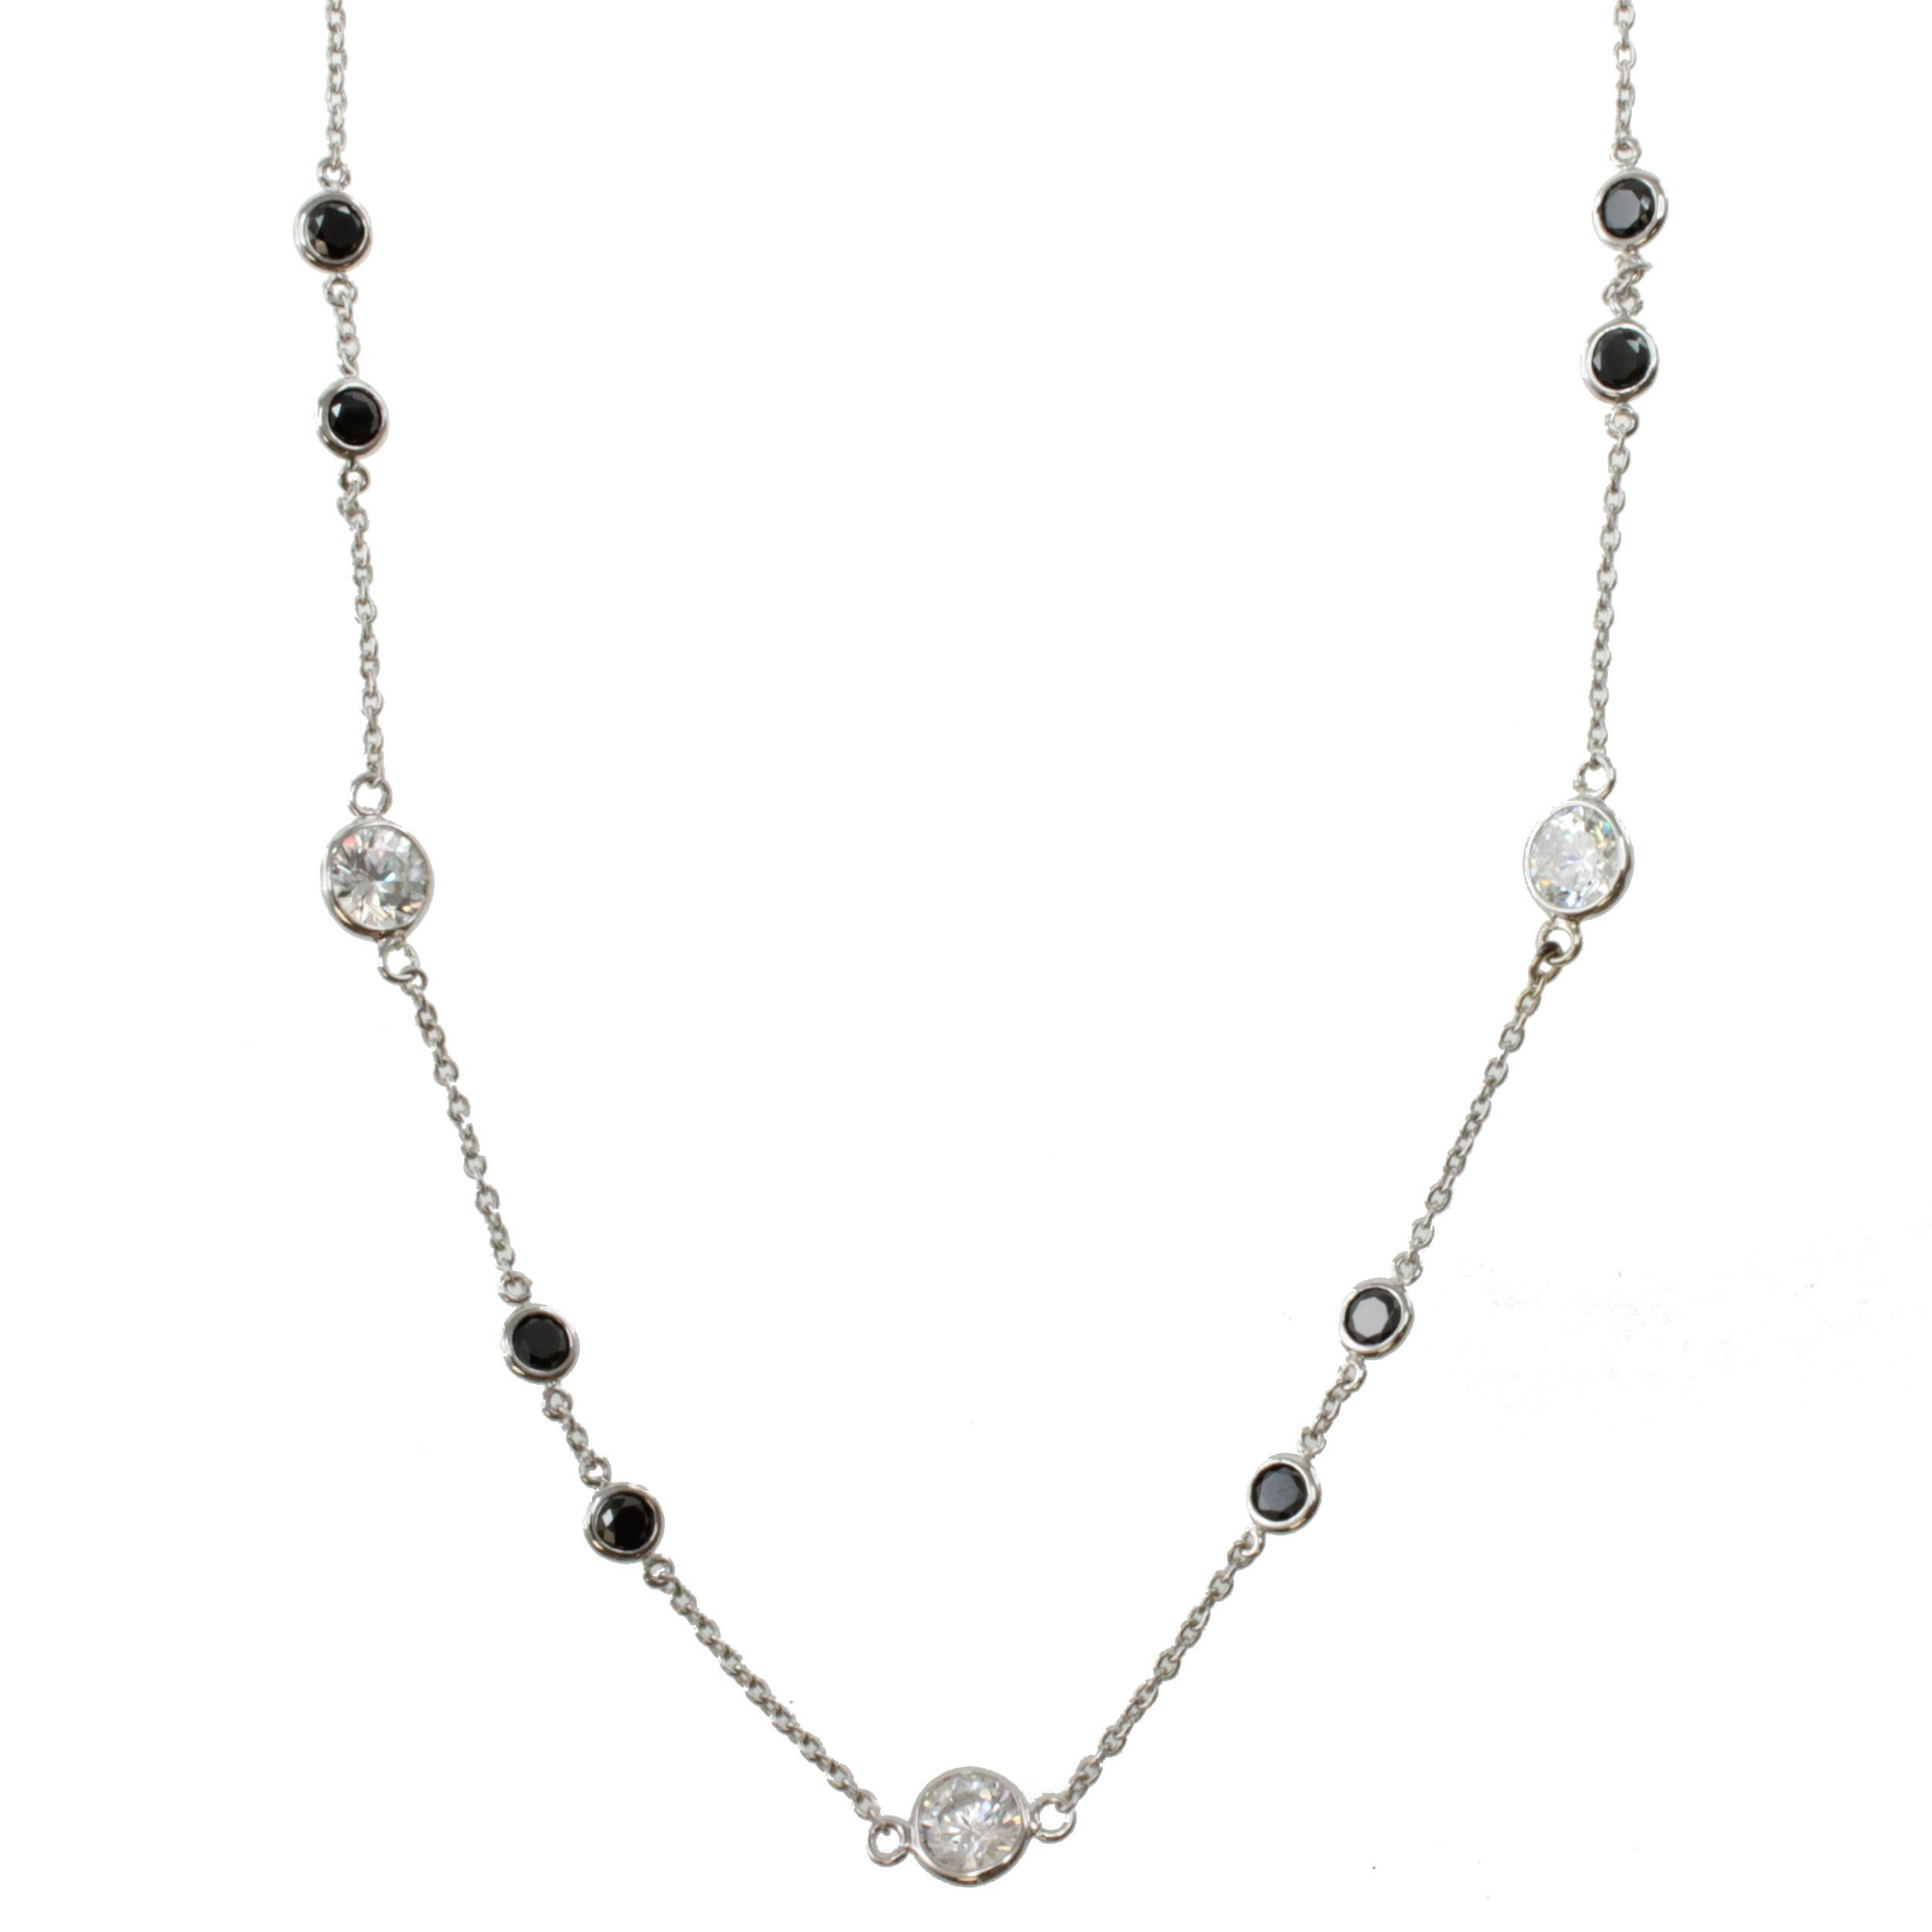 Michael valitutti k white gold black and white cz station necklace